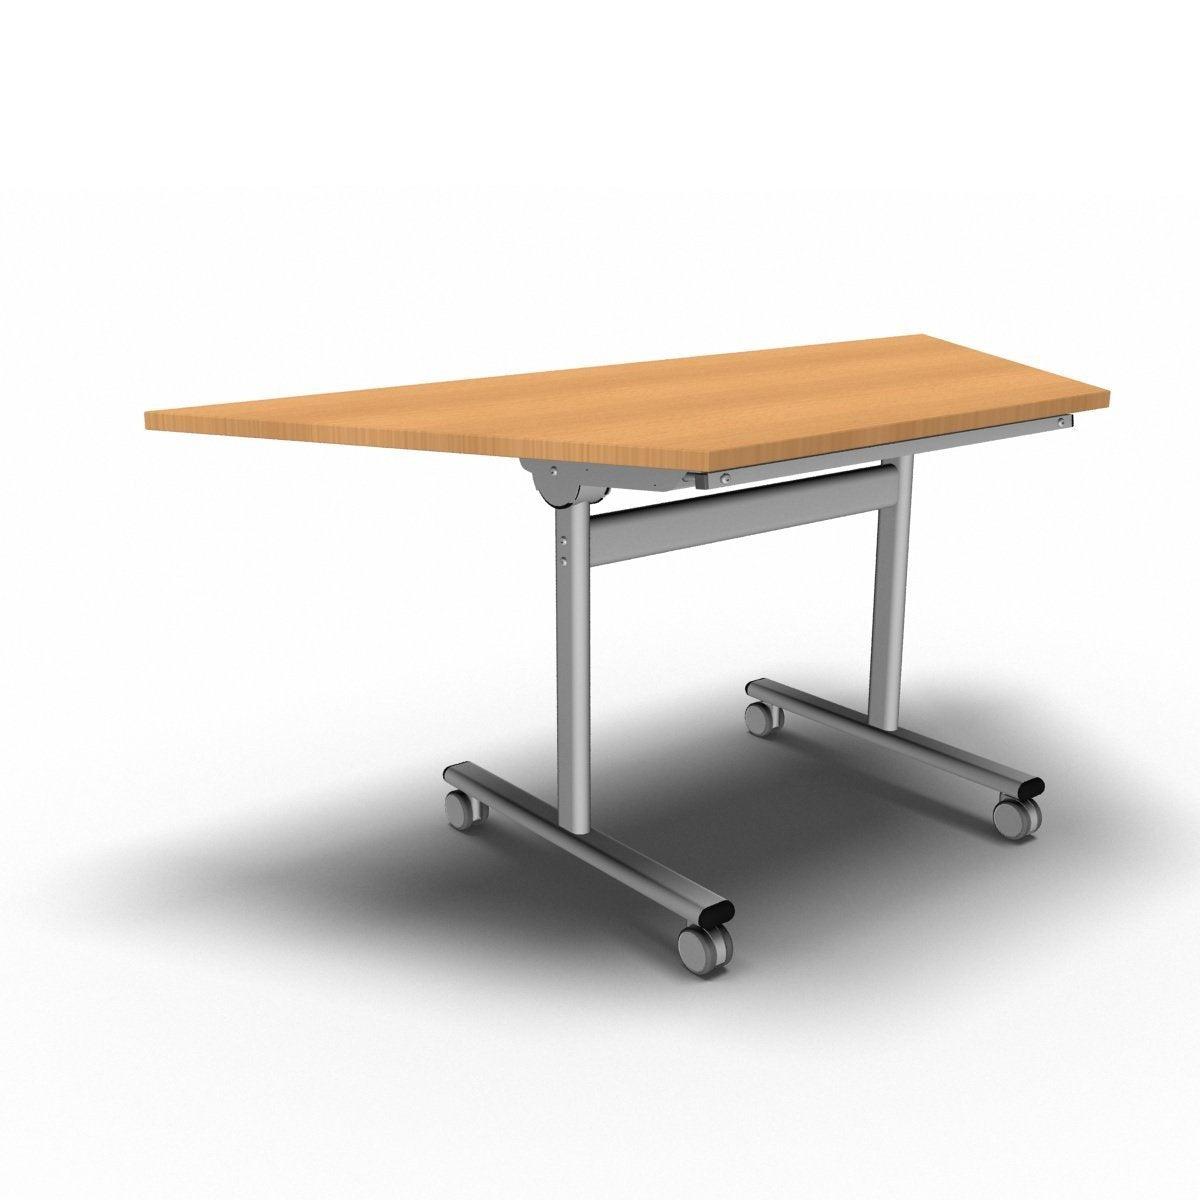 Table 1600 x 800 x 720mm / Trapezoidal / Beech Synergy Flip Top Tables